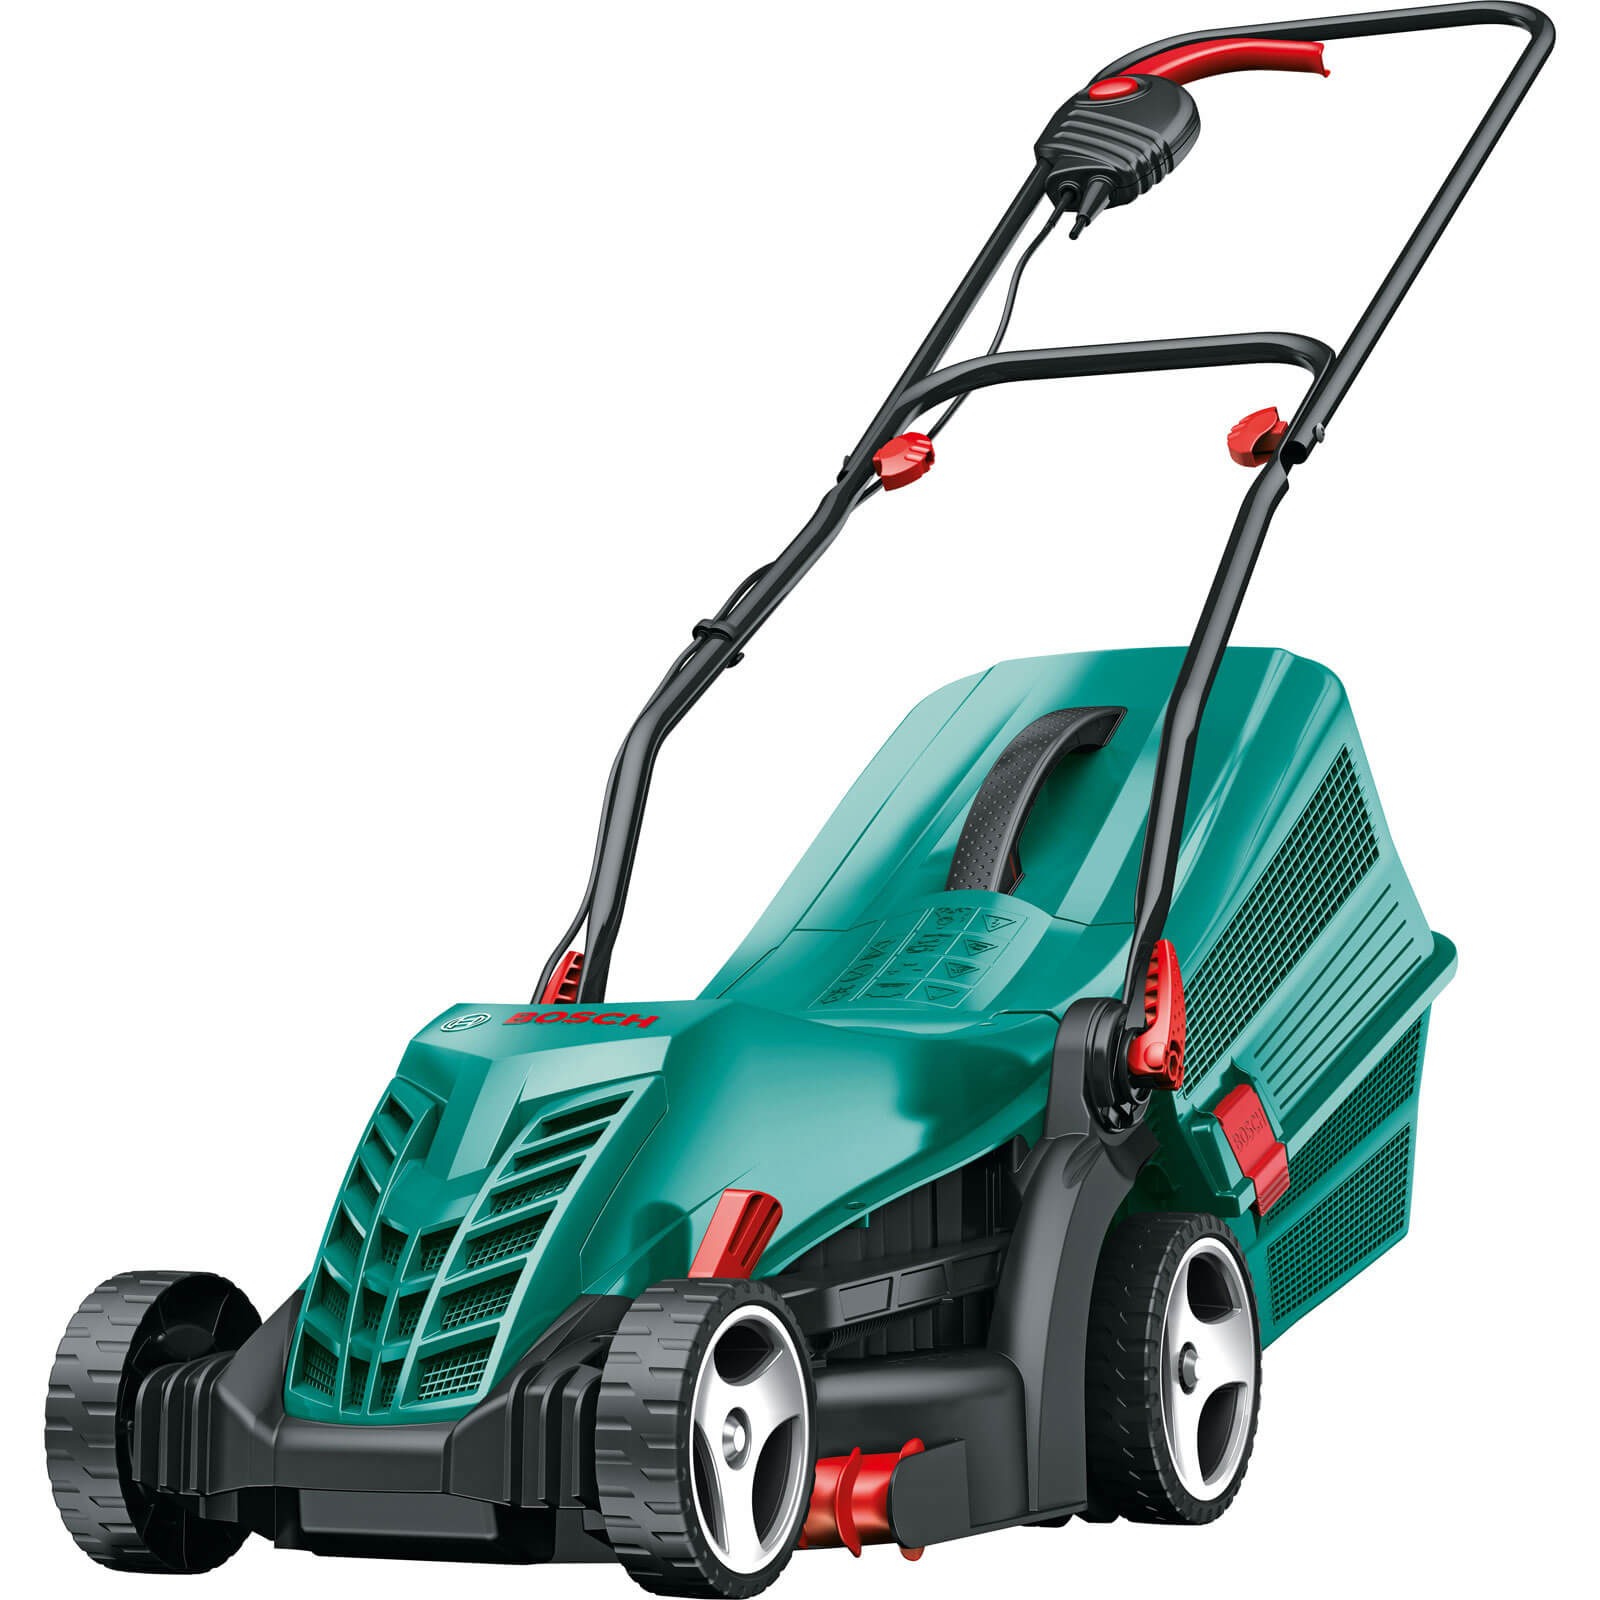 bosch rotak 34 shop for cheap lawn mowers and save online. Black Bedroom Furniture Sets. Home Design Ideas